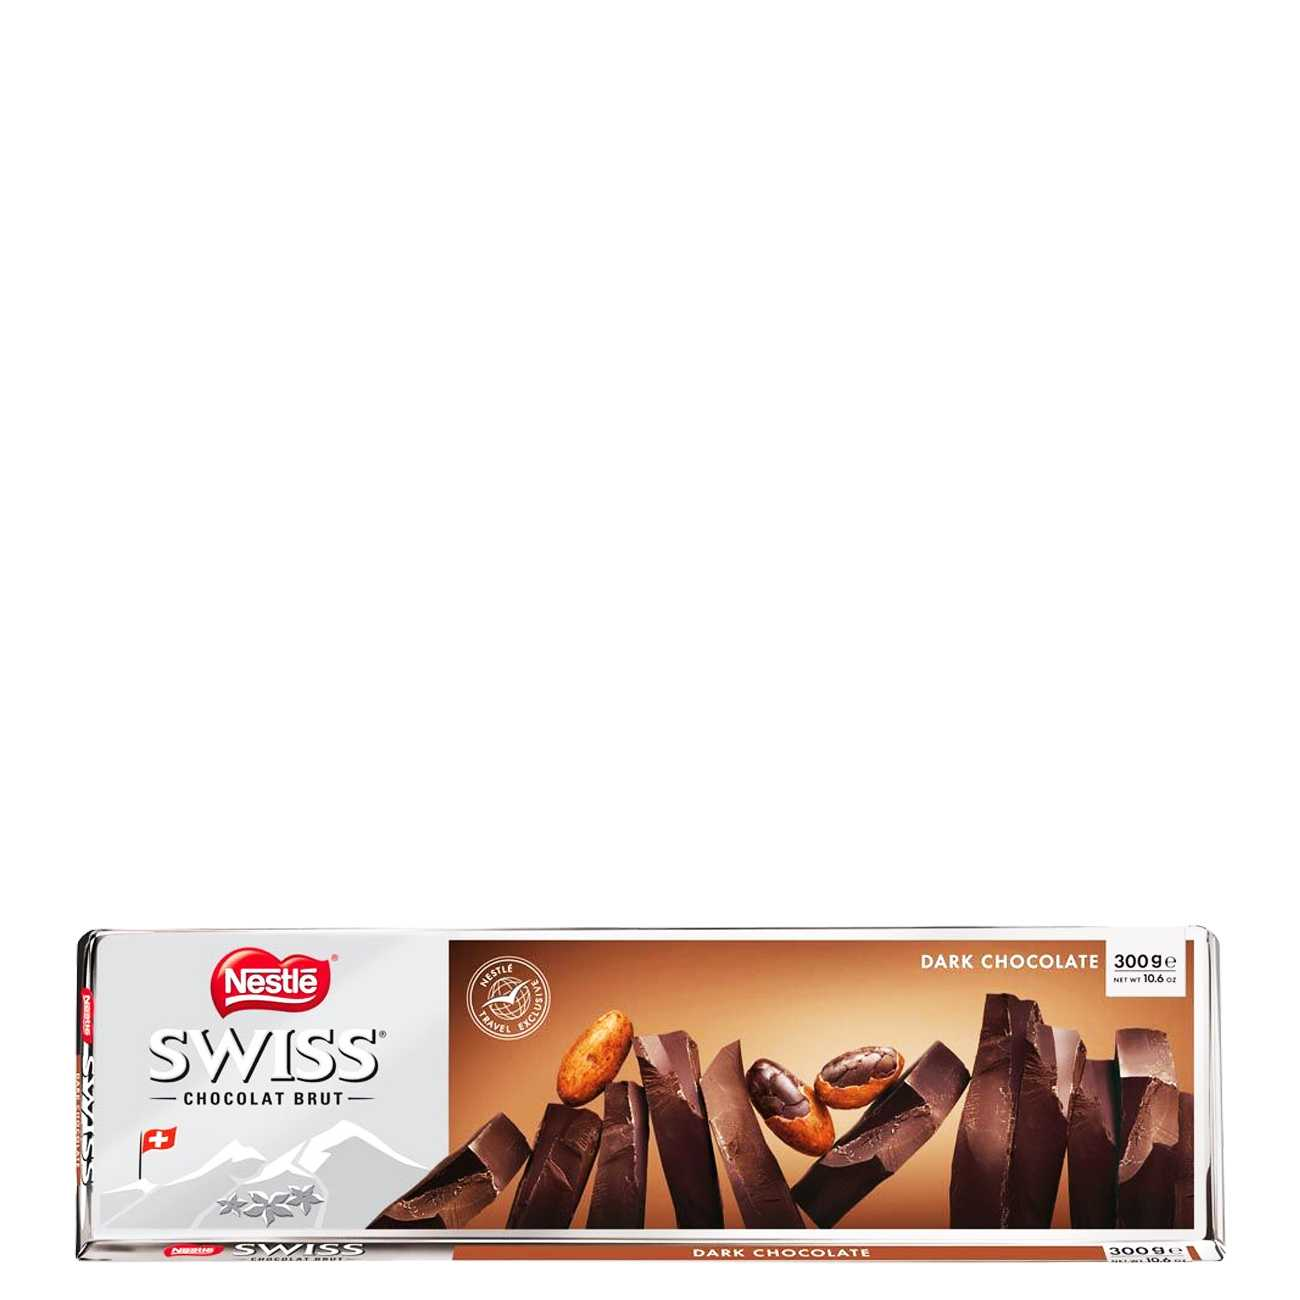 DARK CHOCOLATE 300 G